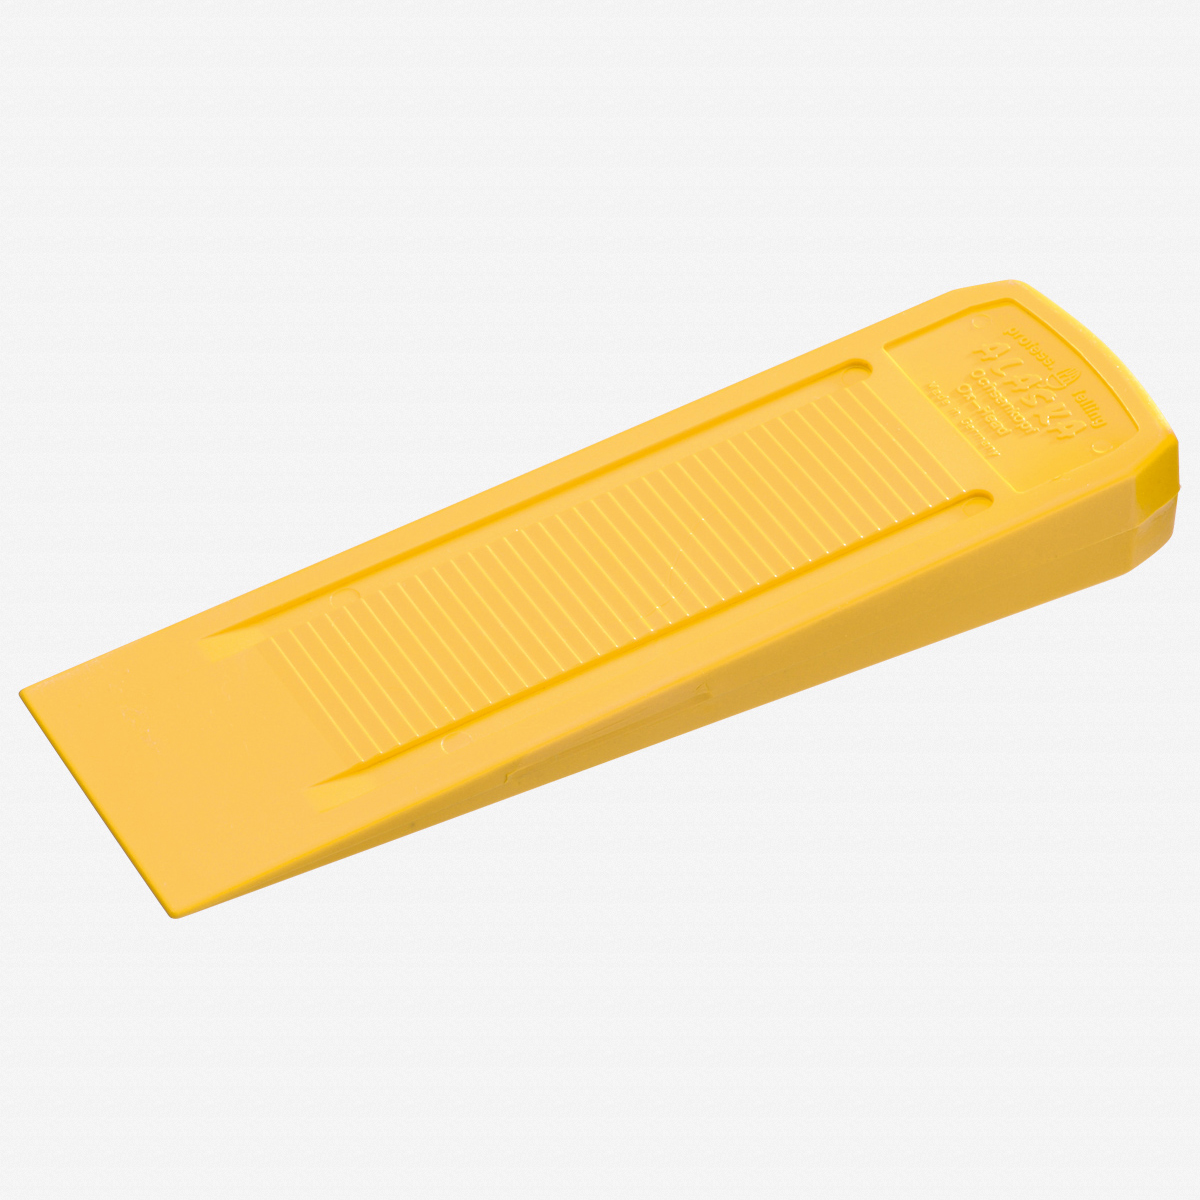 Ox Head OX 31-0300 Plastic felling wedge, Alaska type - KC Tool